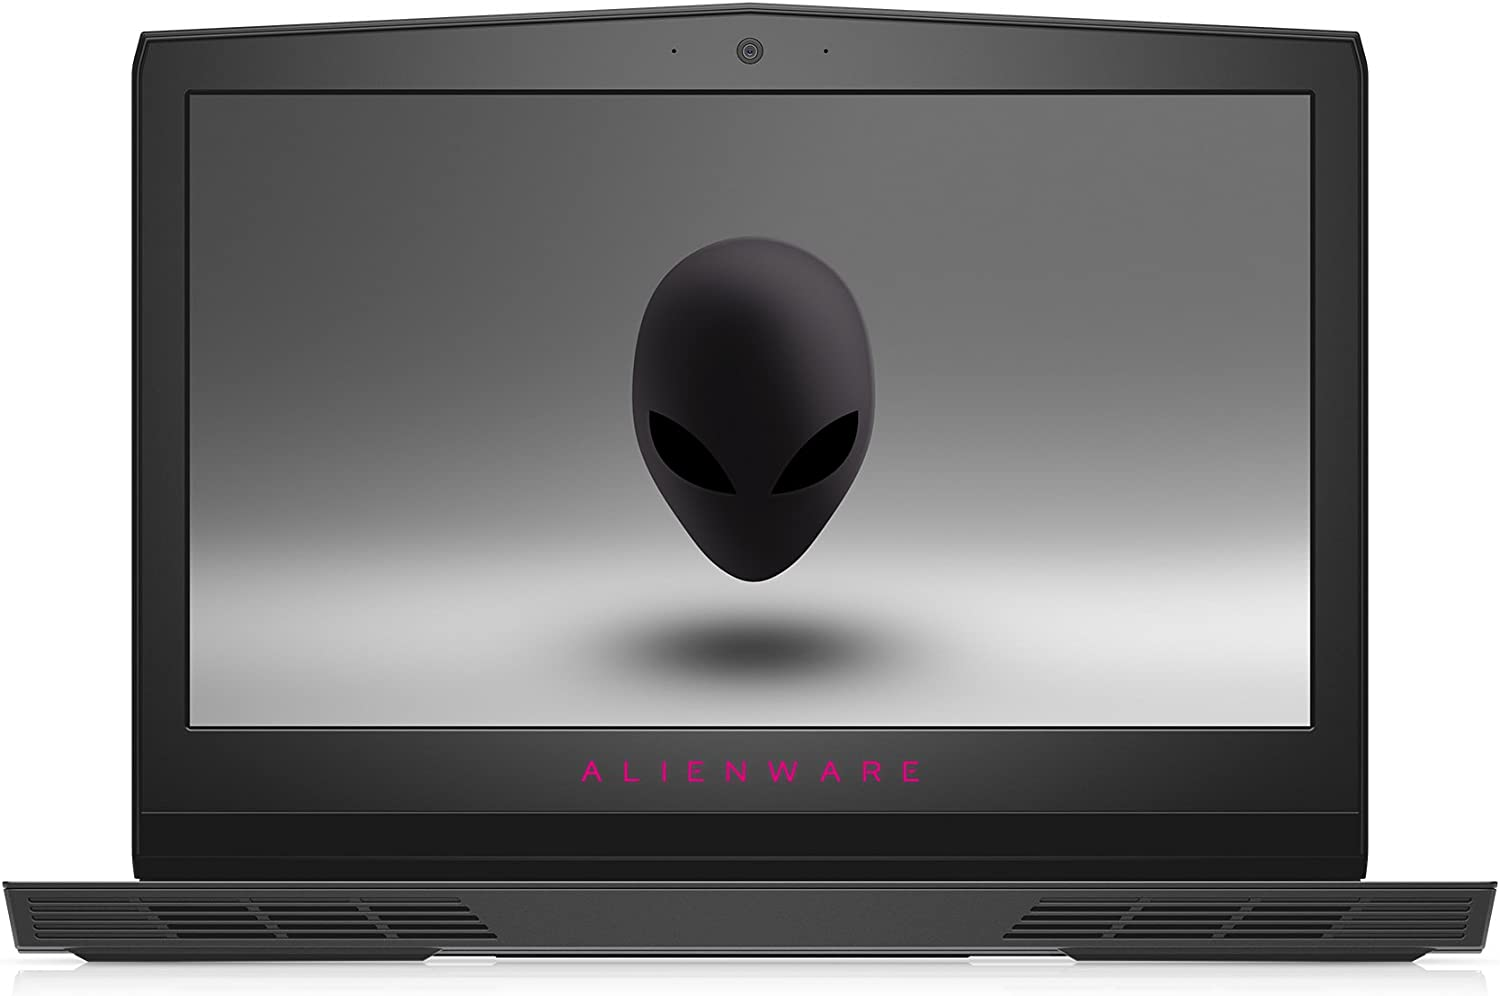 "Alienware AW17R4-7006SLV-PUS 17"" Gaming Laptop (7th Generation Intel Core i7, 16GB RAM, 256GB SSD + 1TB HDD, Silver) with NVIDIA GTX 1070"